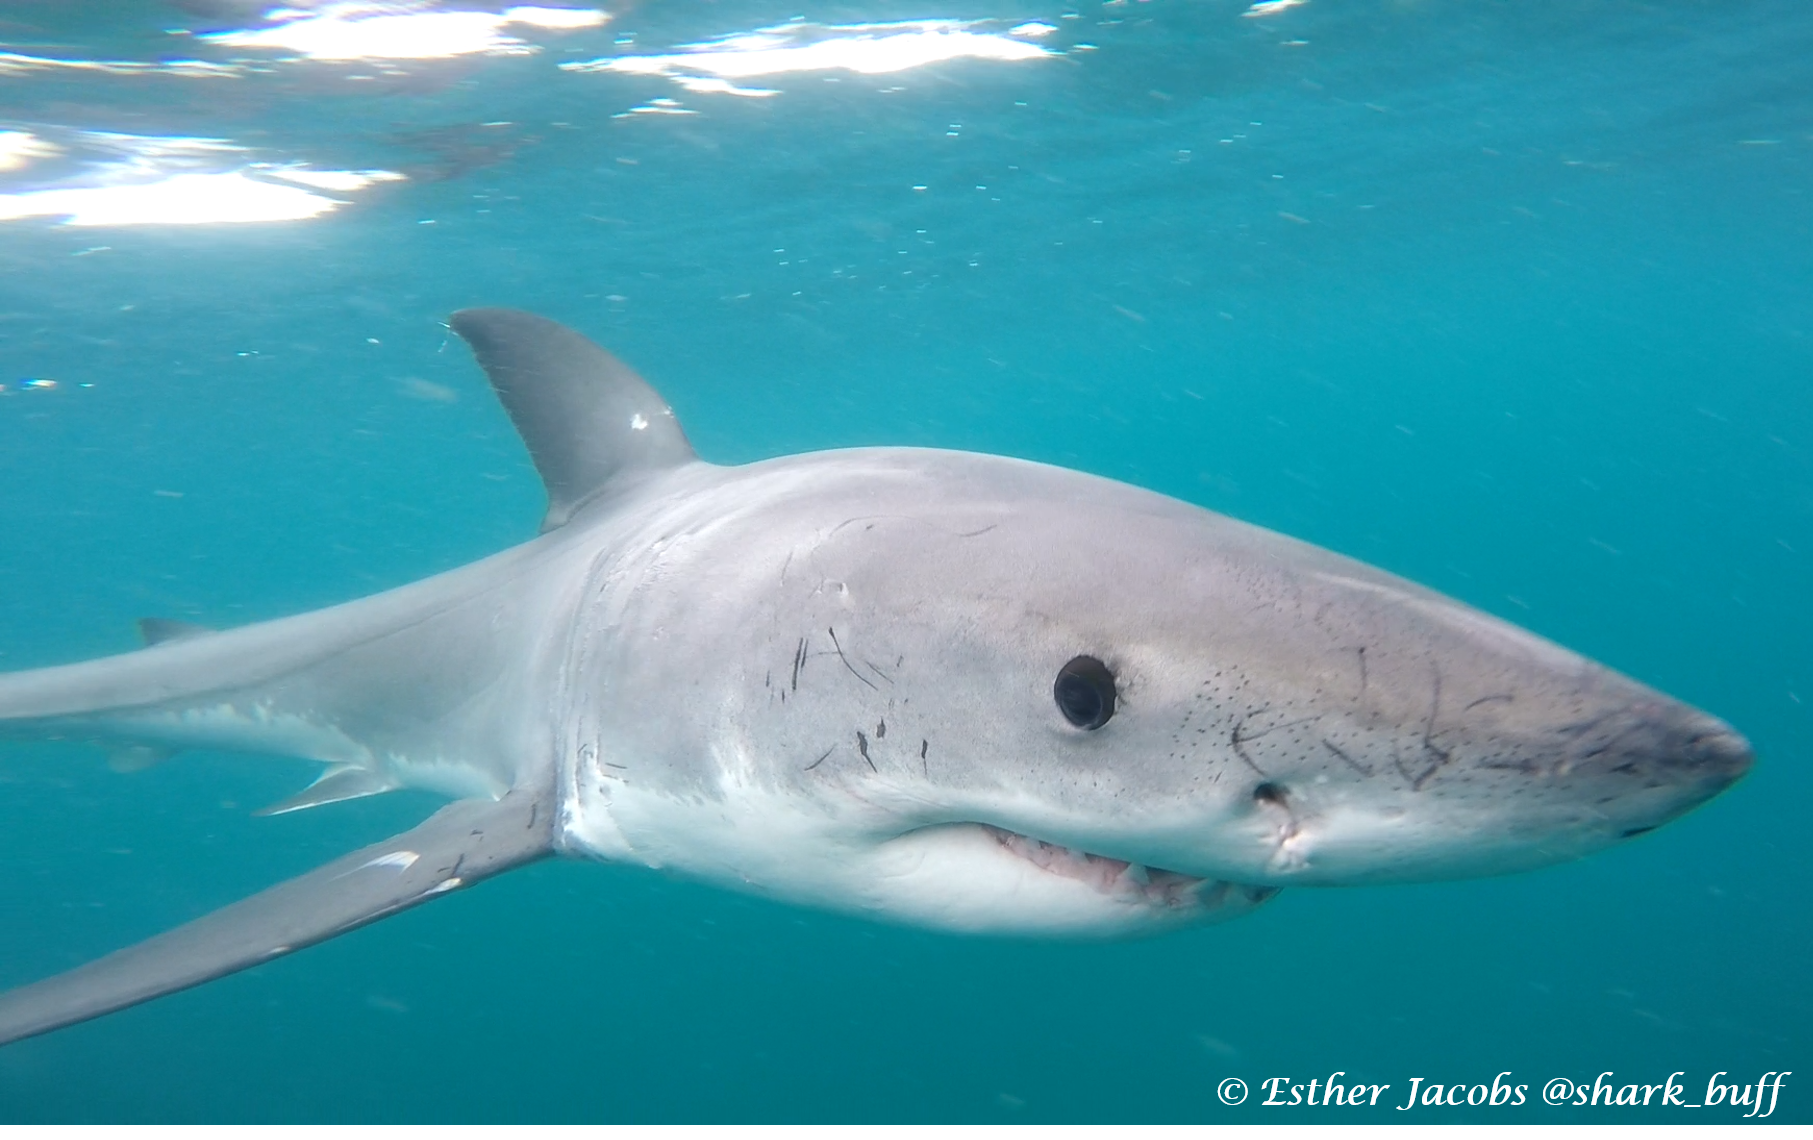 Oceans Research: Shark Deterrent Fail